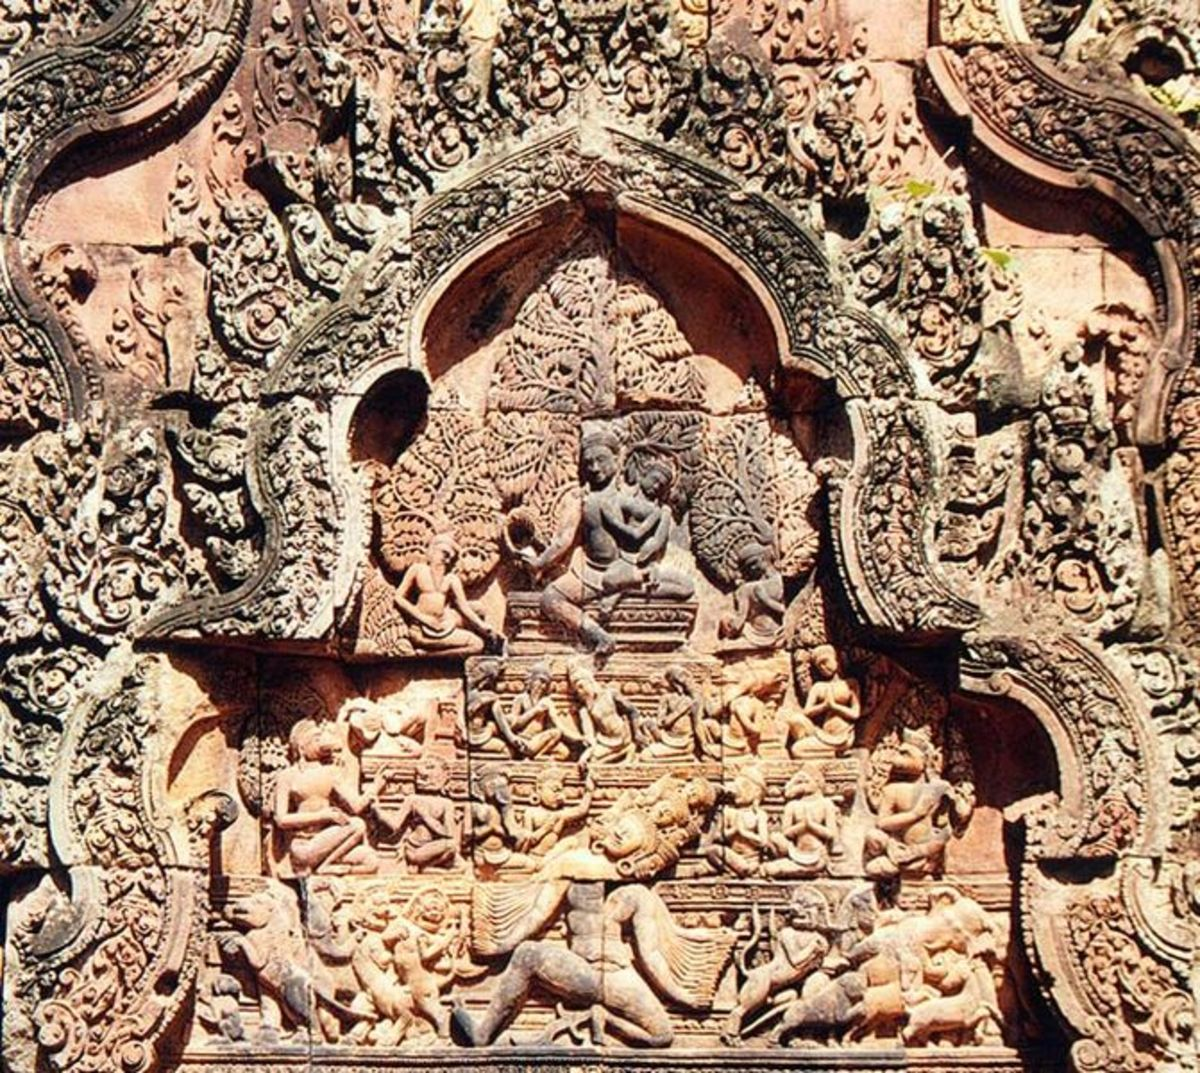 A mural of Shiva, Uma, and Ravana at Banteay Srei temple in Angkor.